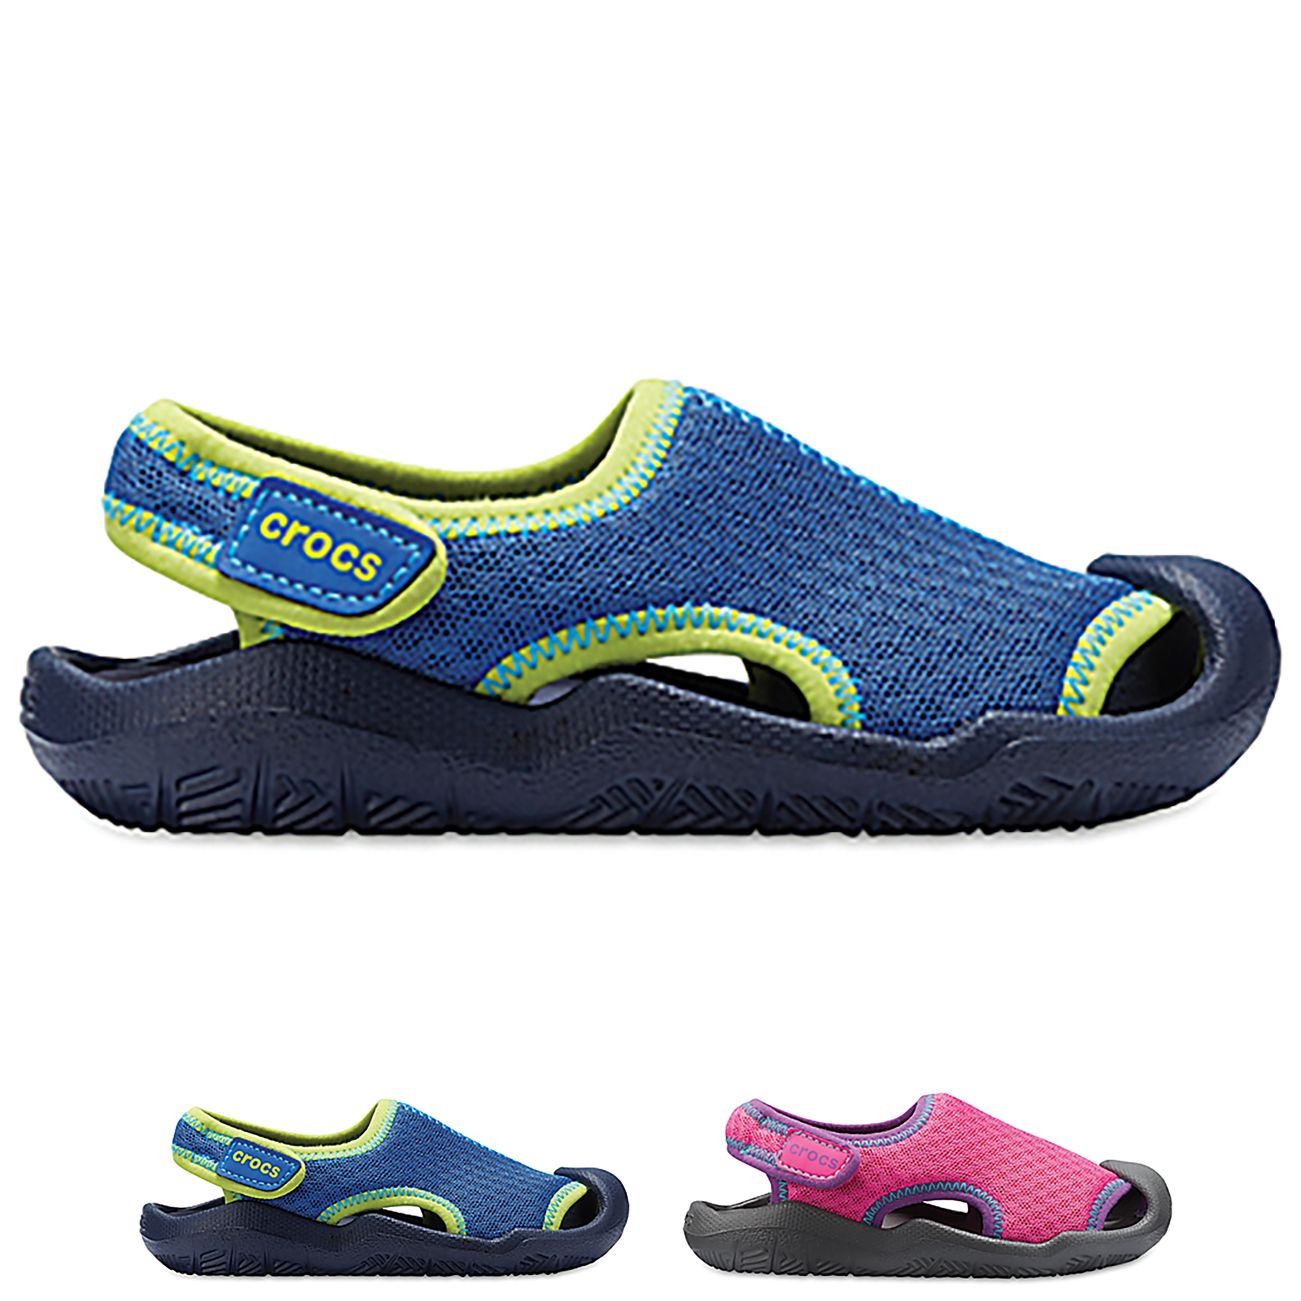 Unisex Kids Crocs Swiftwater Sandal Pool Holiday Water Resistant Shoes All Sizes